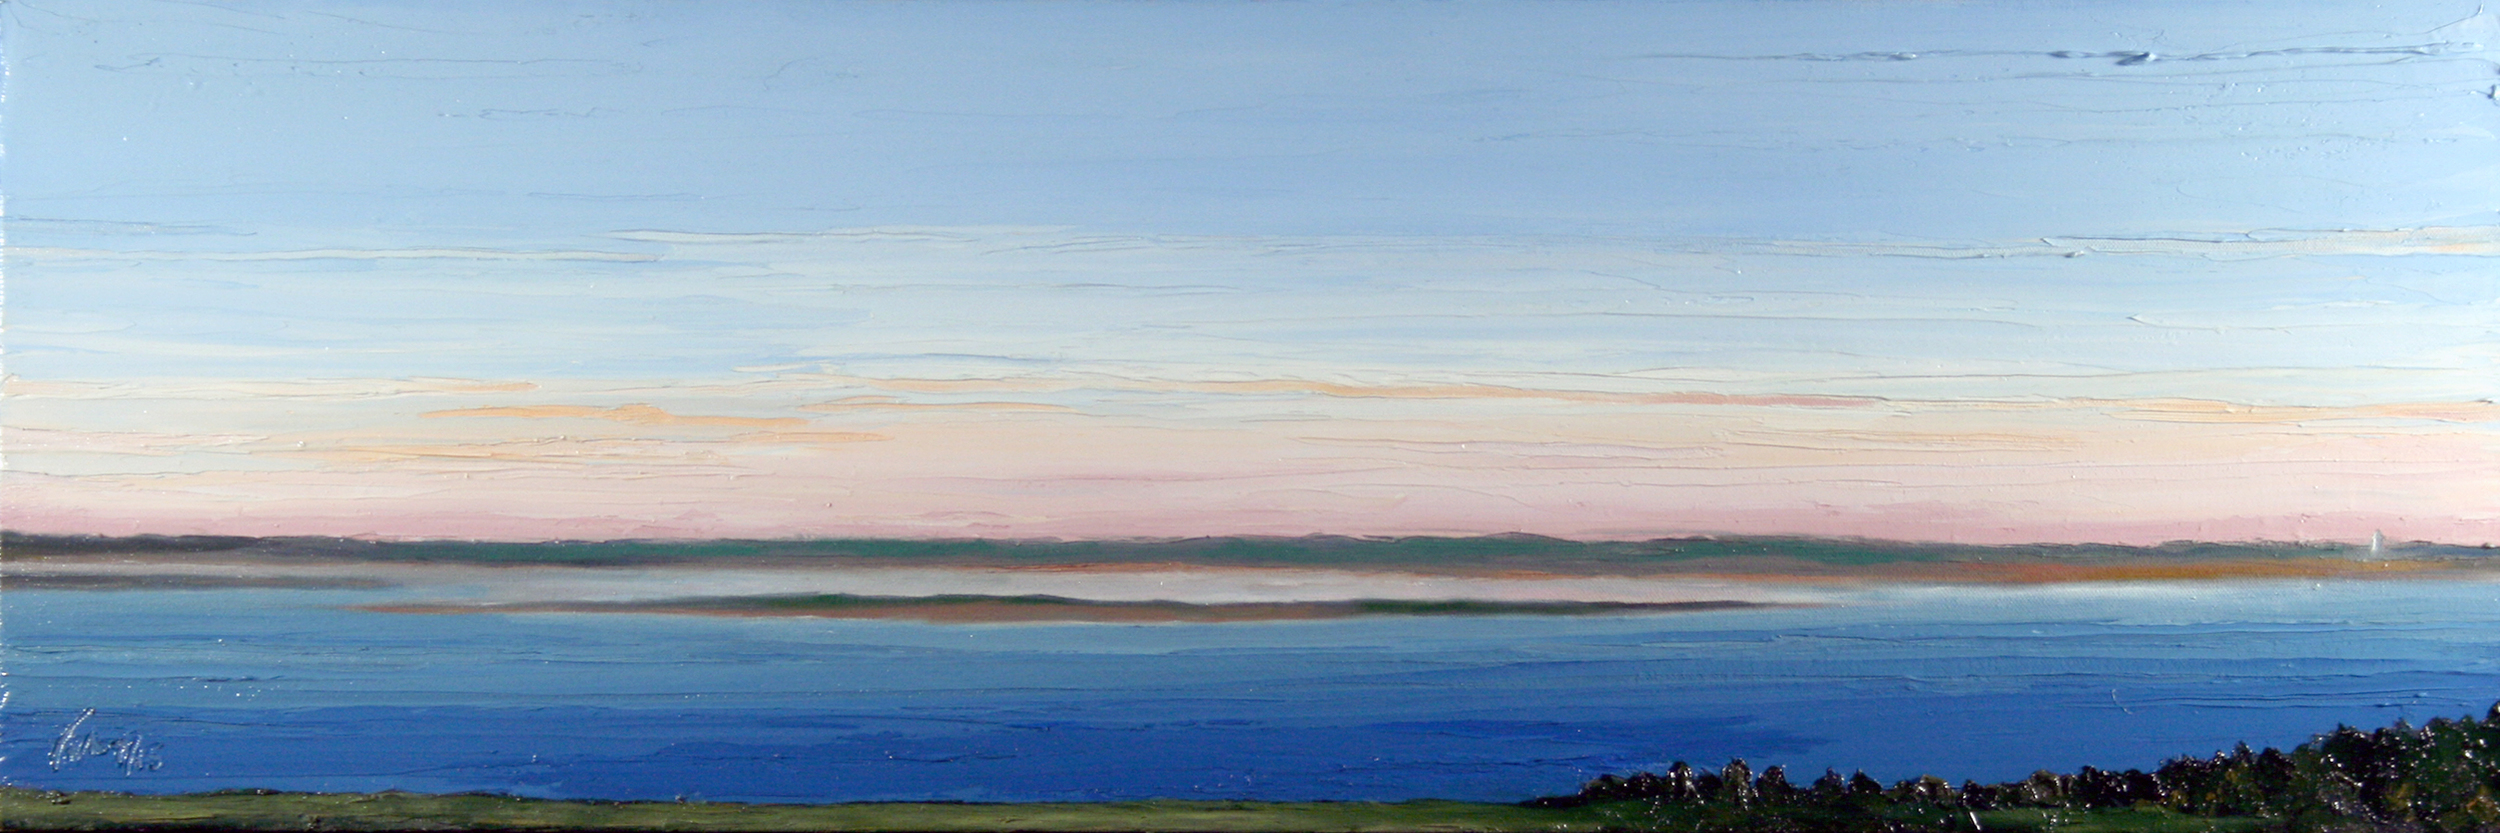 Donahue View - Barnstable MA to Chatham Light, oil on canvas, 12 by 36 inches, 2015